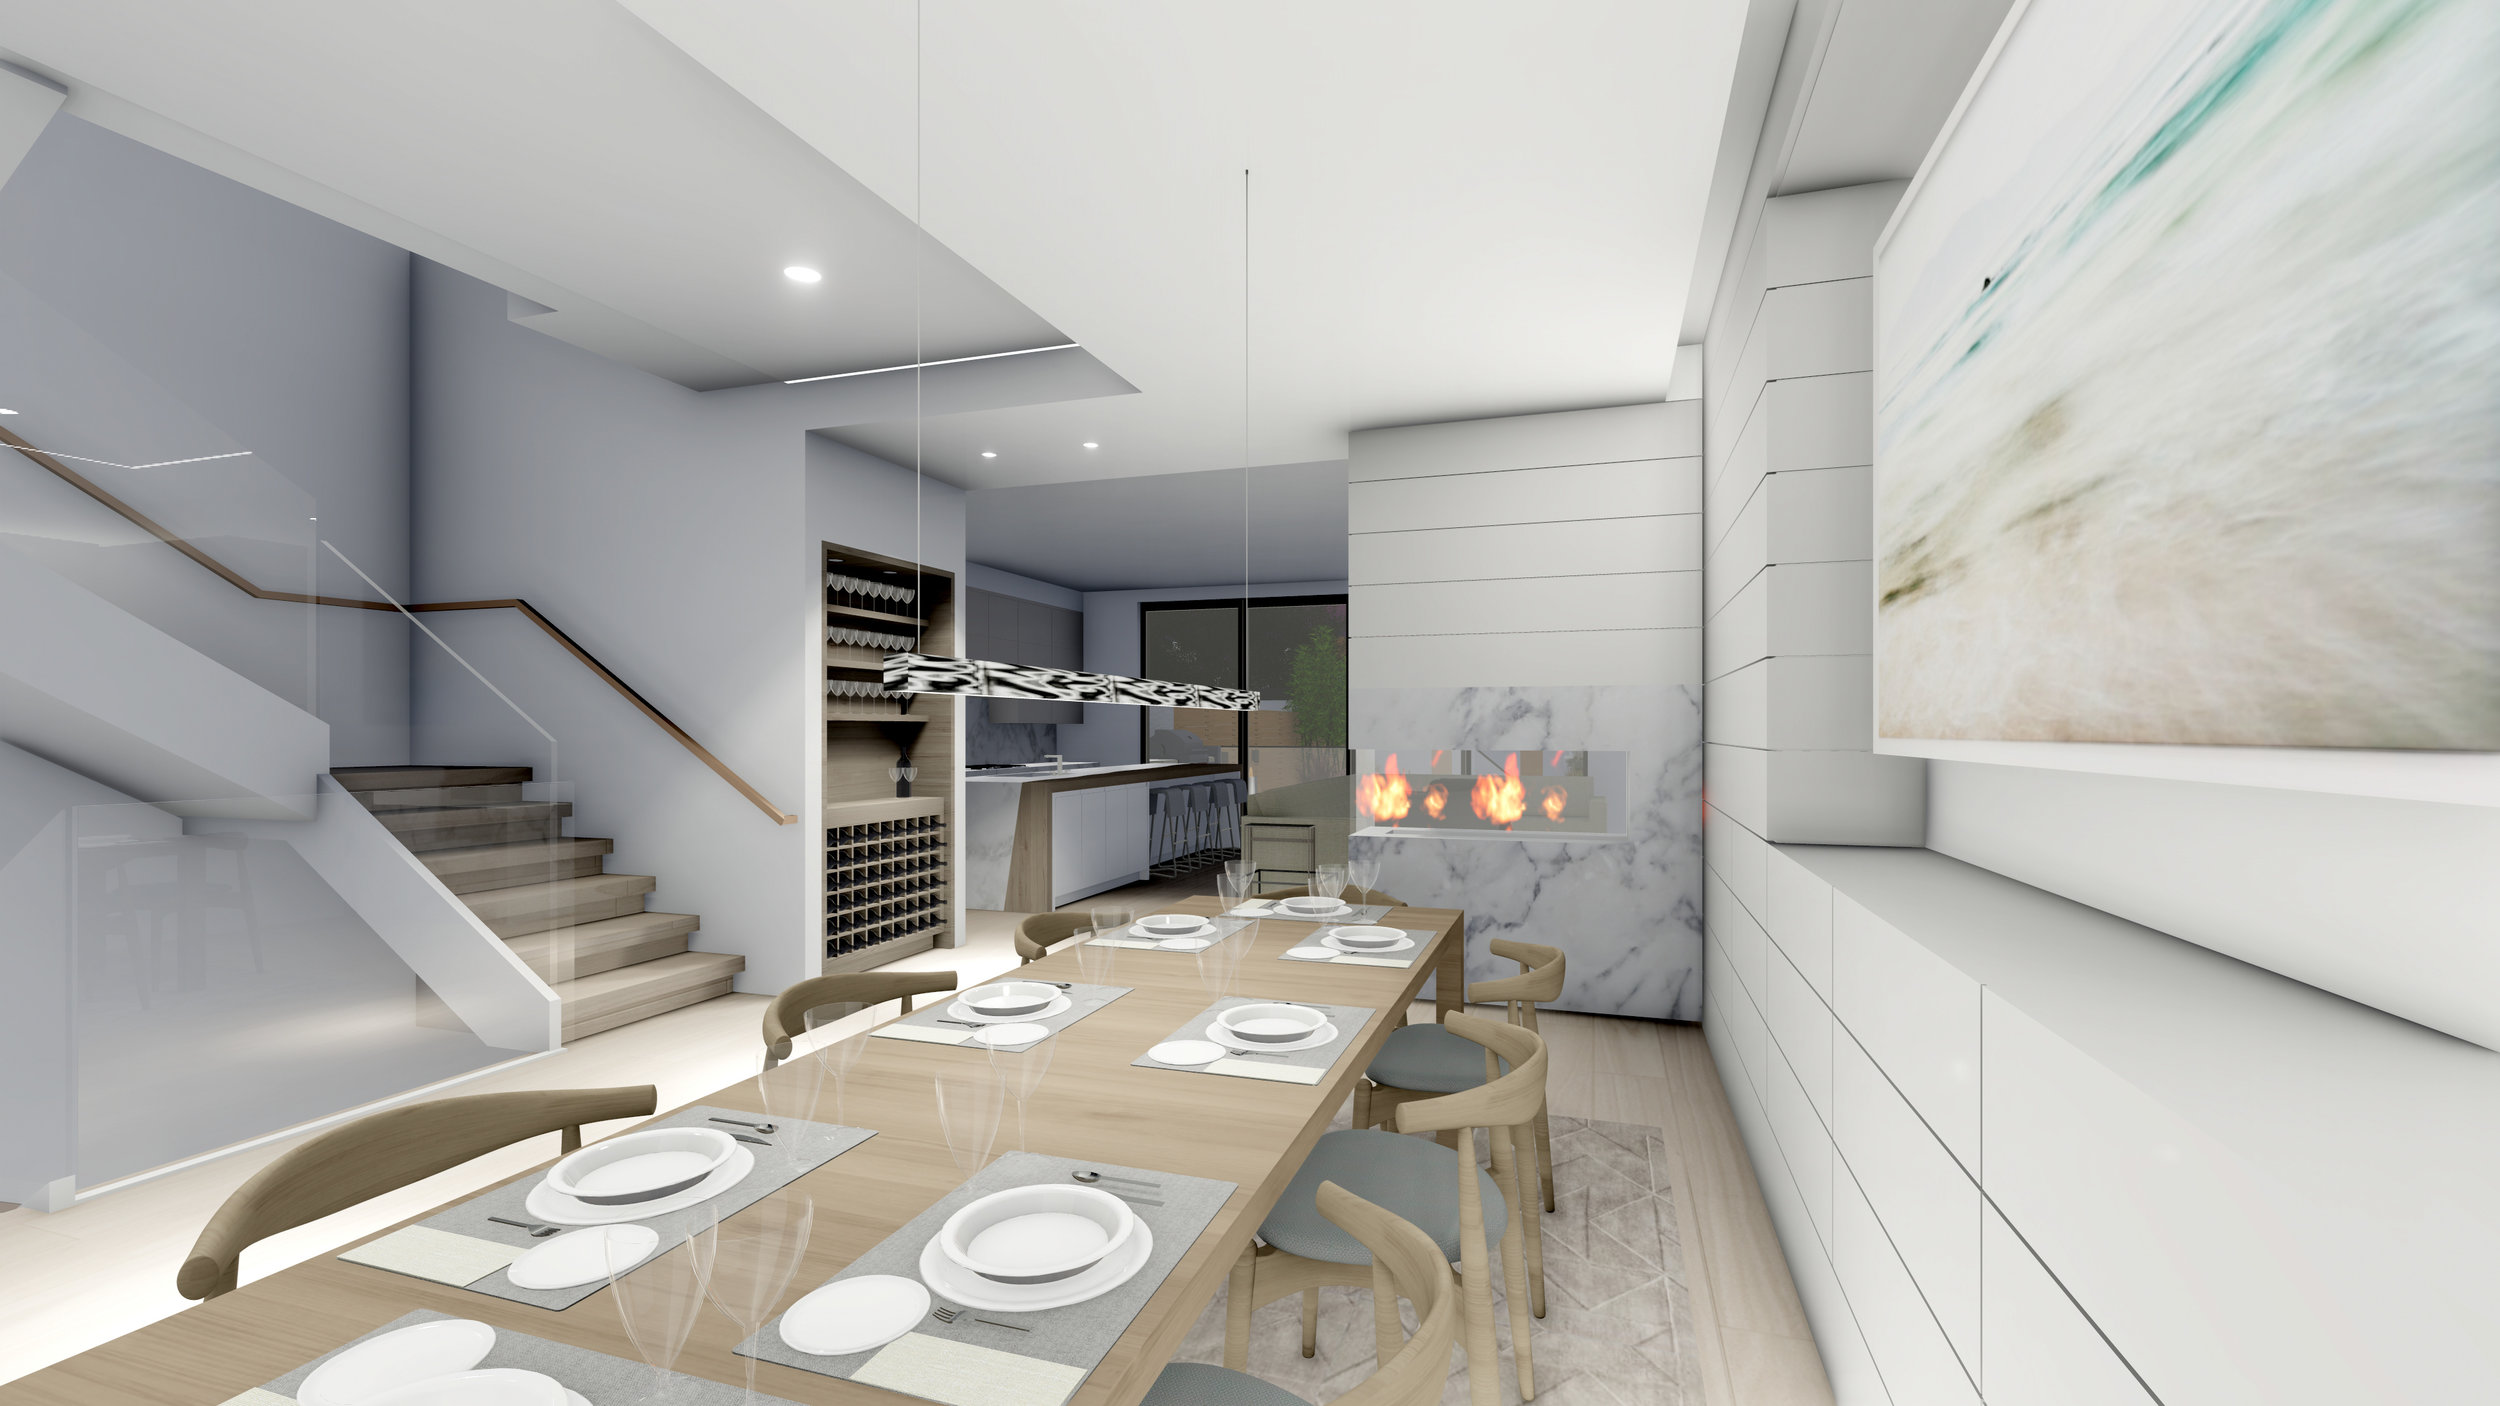 428 Collinwood Street - RENDERS - DINING_AND_STAIRS_071317.jpg